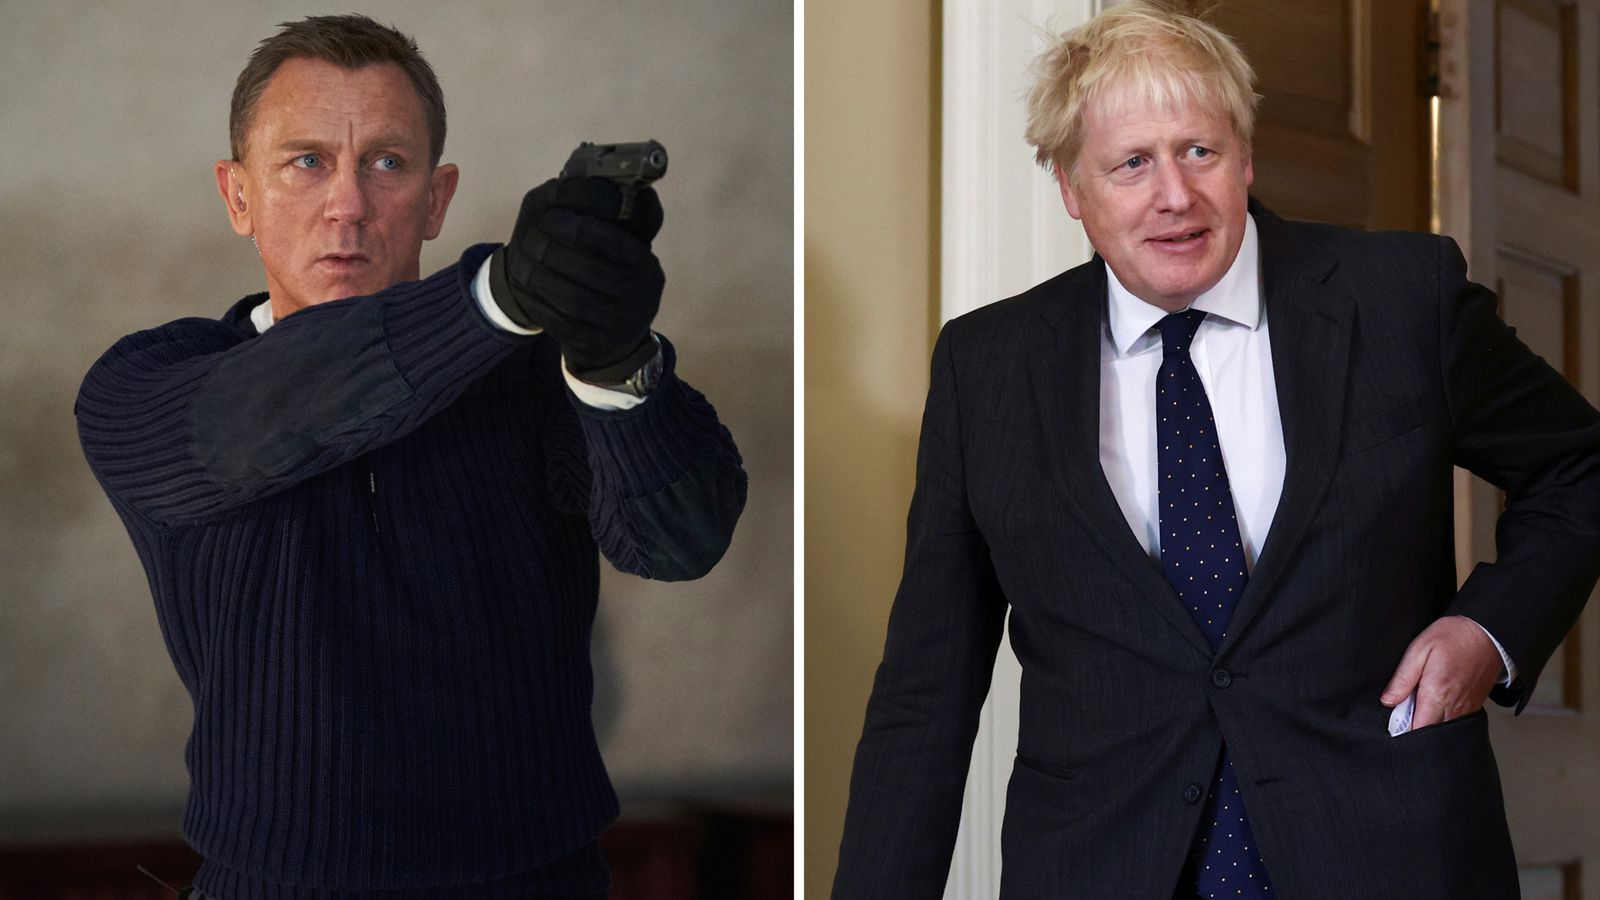 Boris Johnson and staff use £2.6m White House-style briefing room in Downing Street to watch new James Bond film